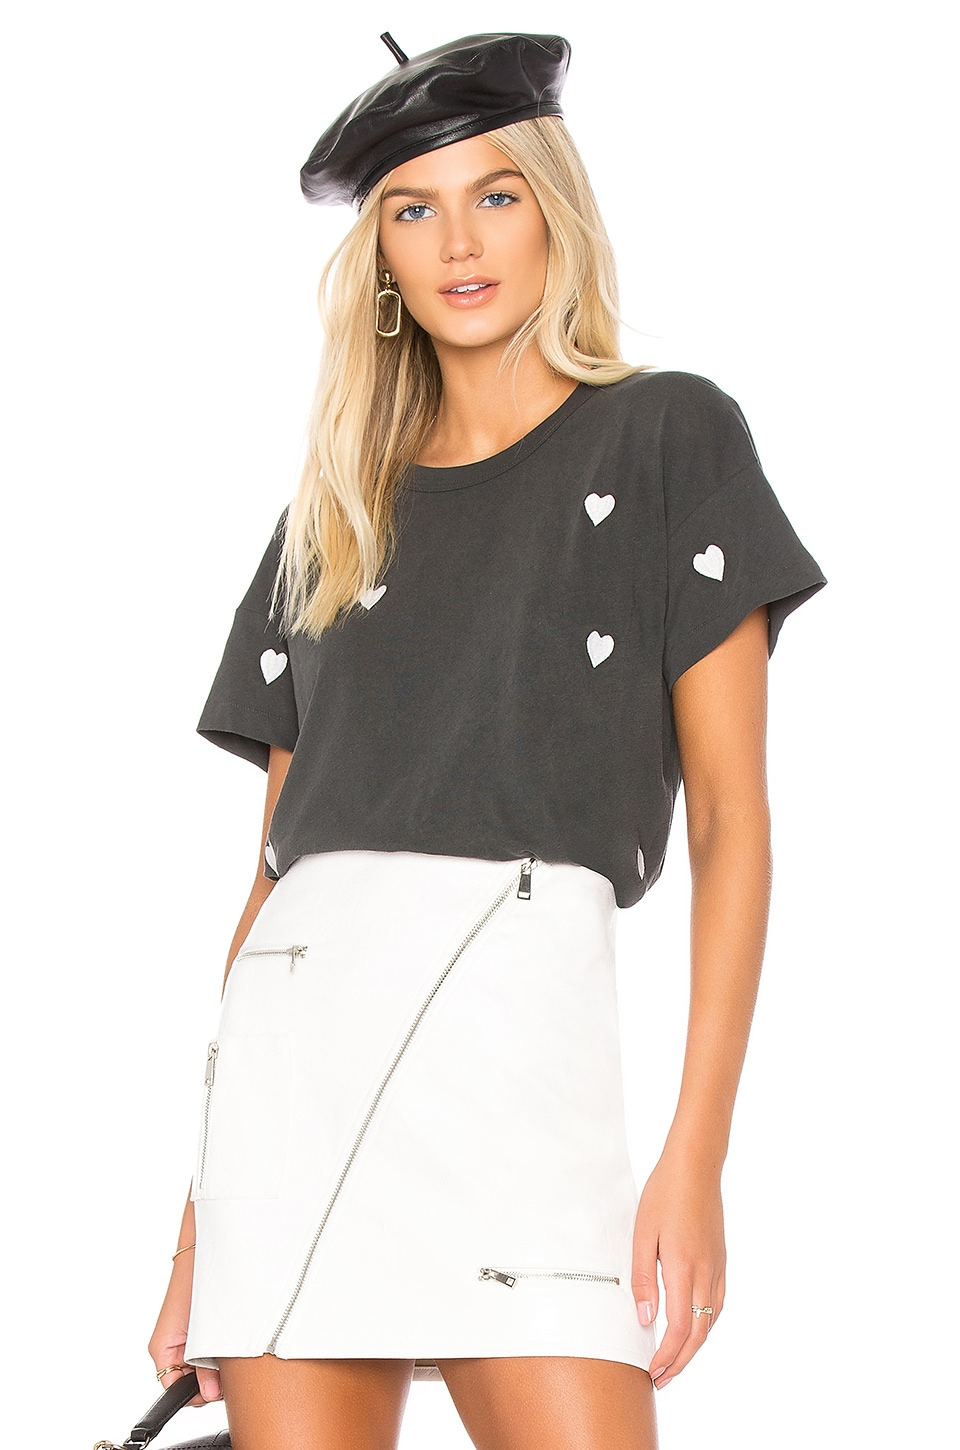 The Great The Boxy Crew in Washed Black With White Hearts